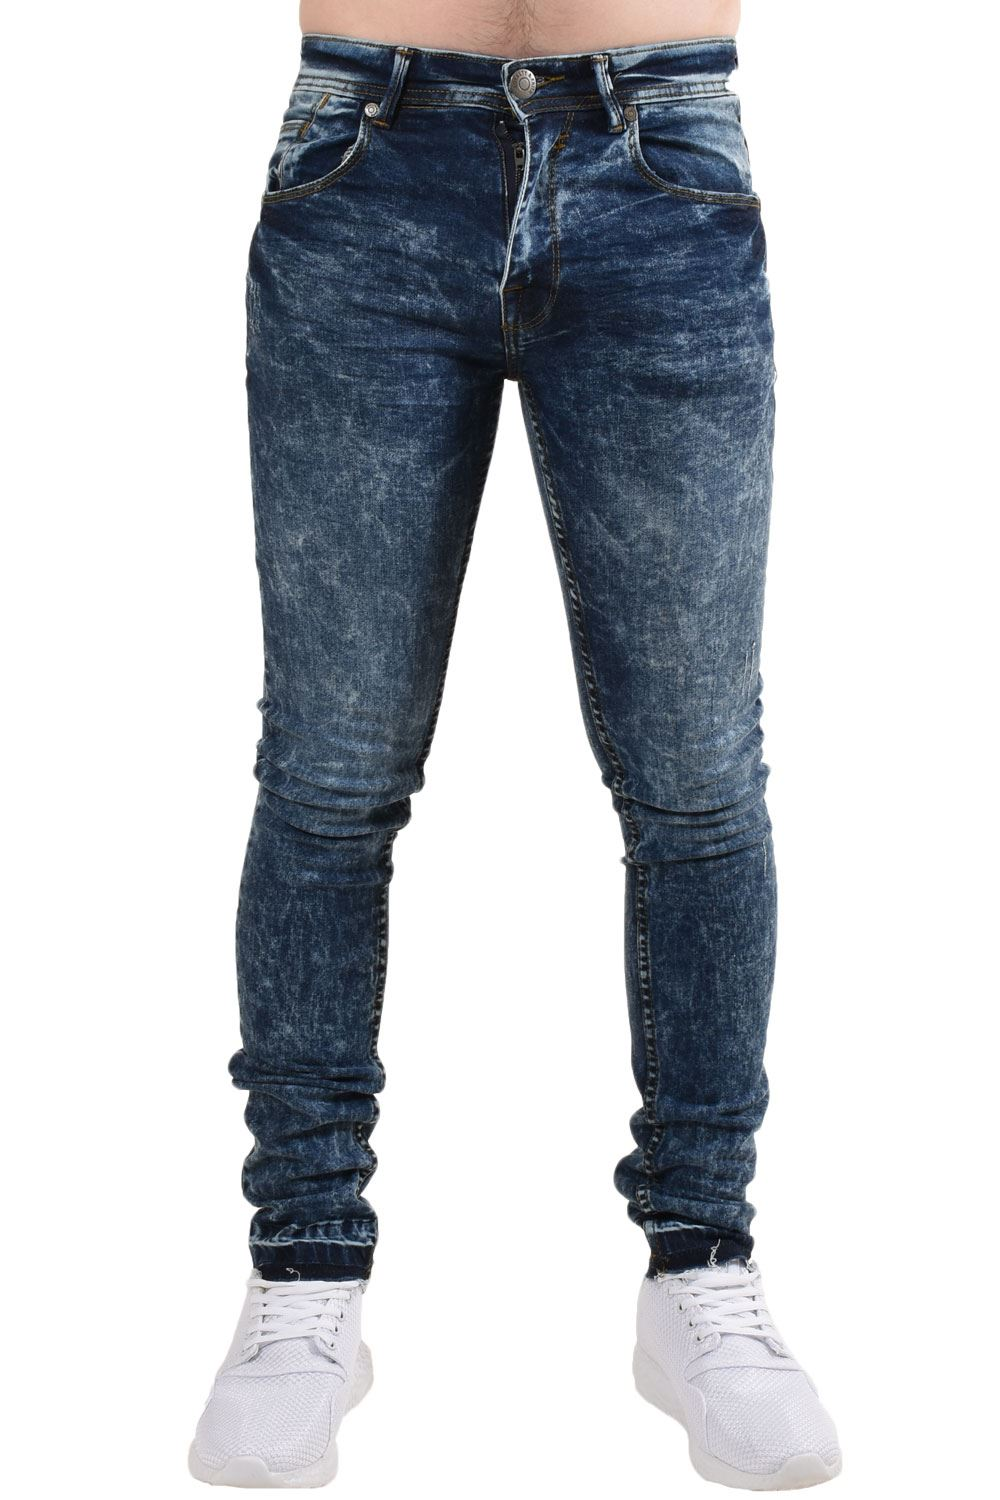 77a3b476fe6 Mens Skinny Jeans Super Stretch Slim Fit Denim Frayed Trousers Pants ...